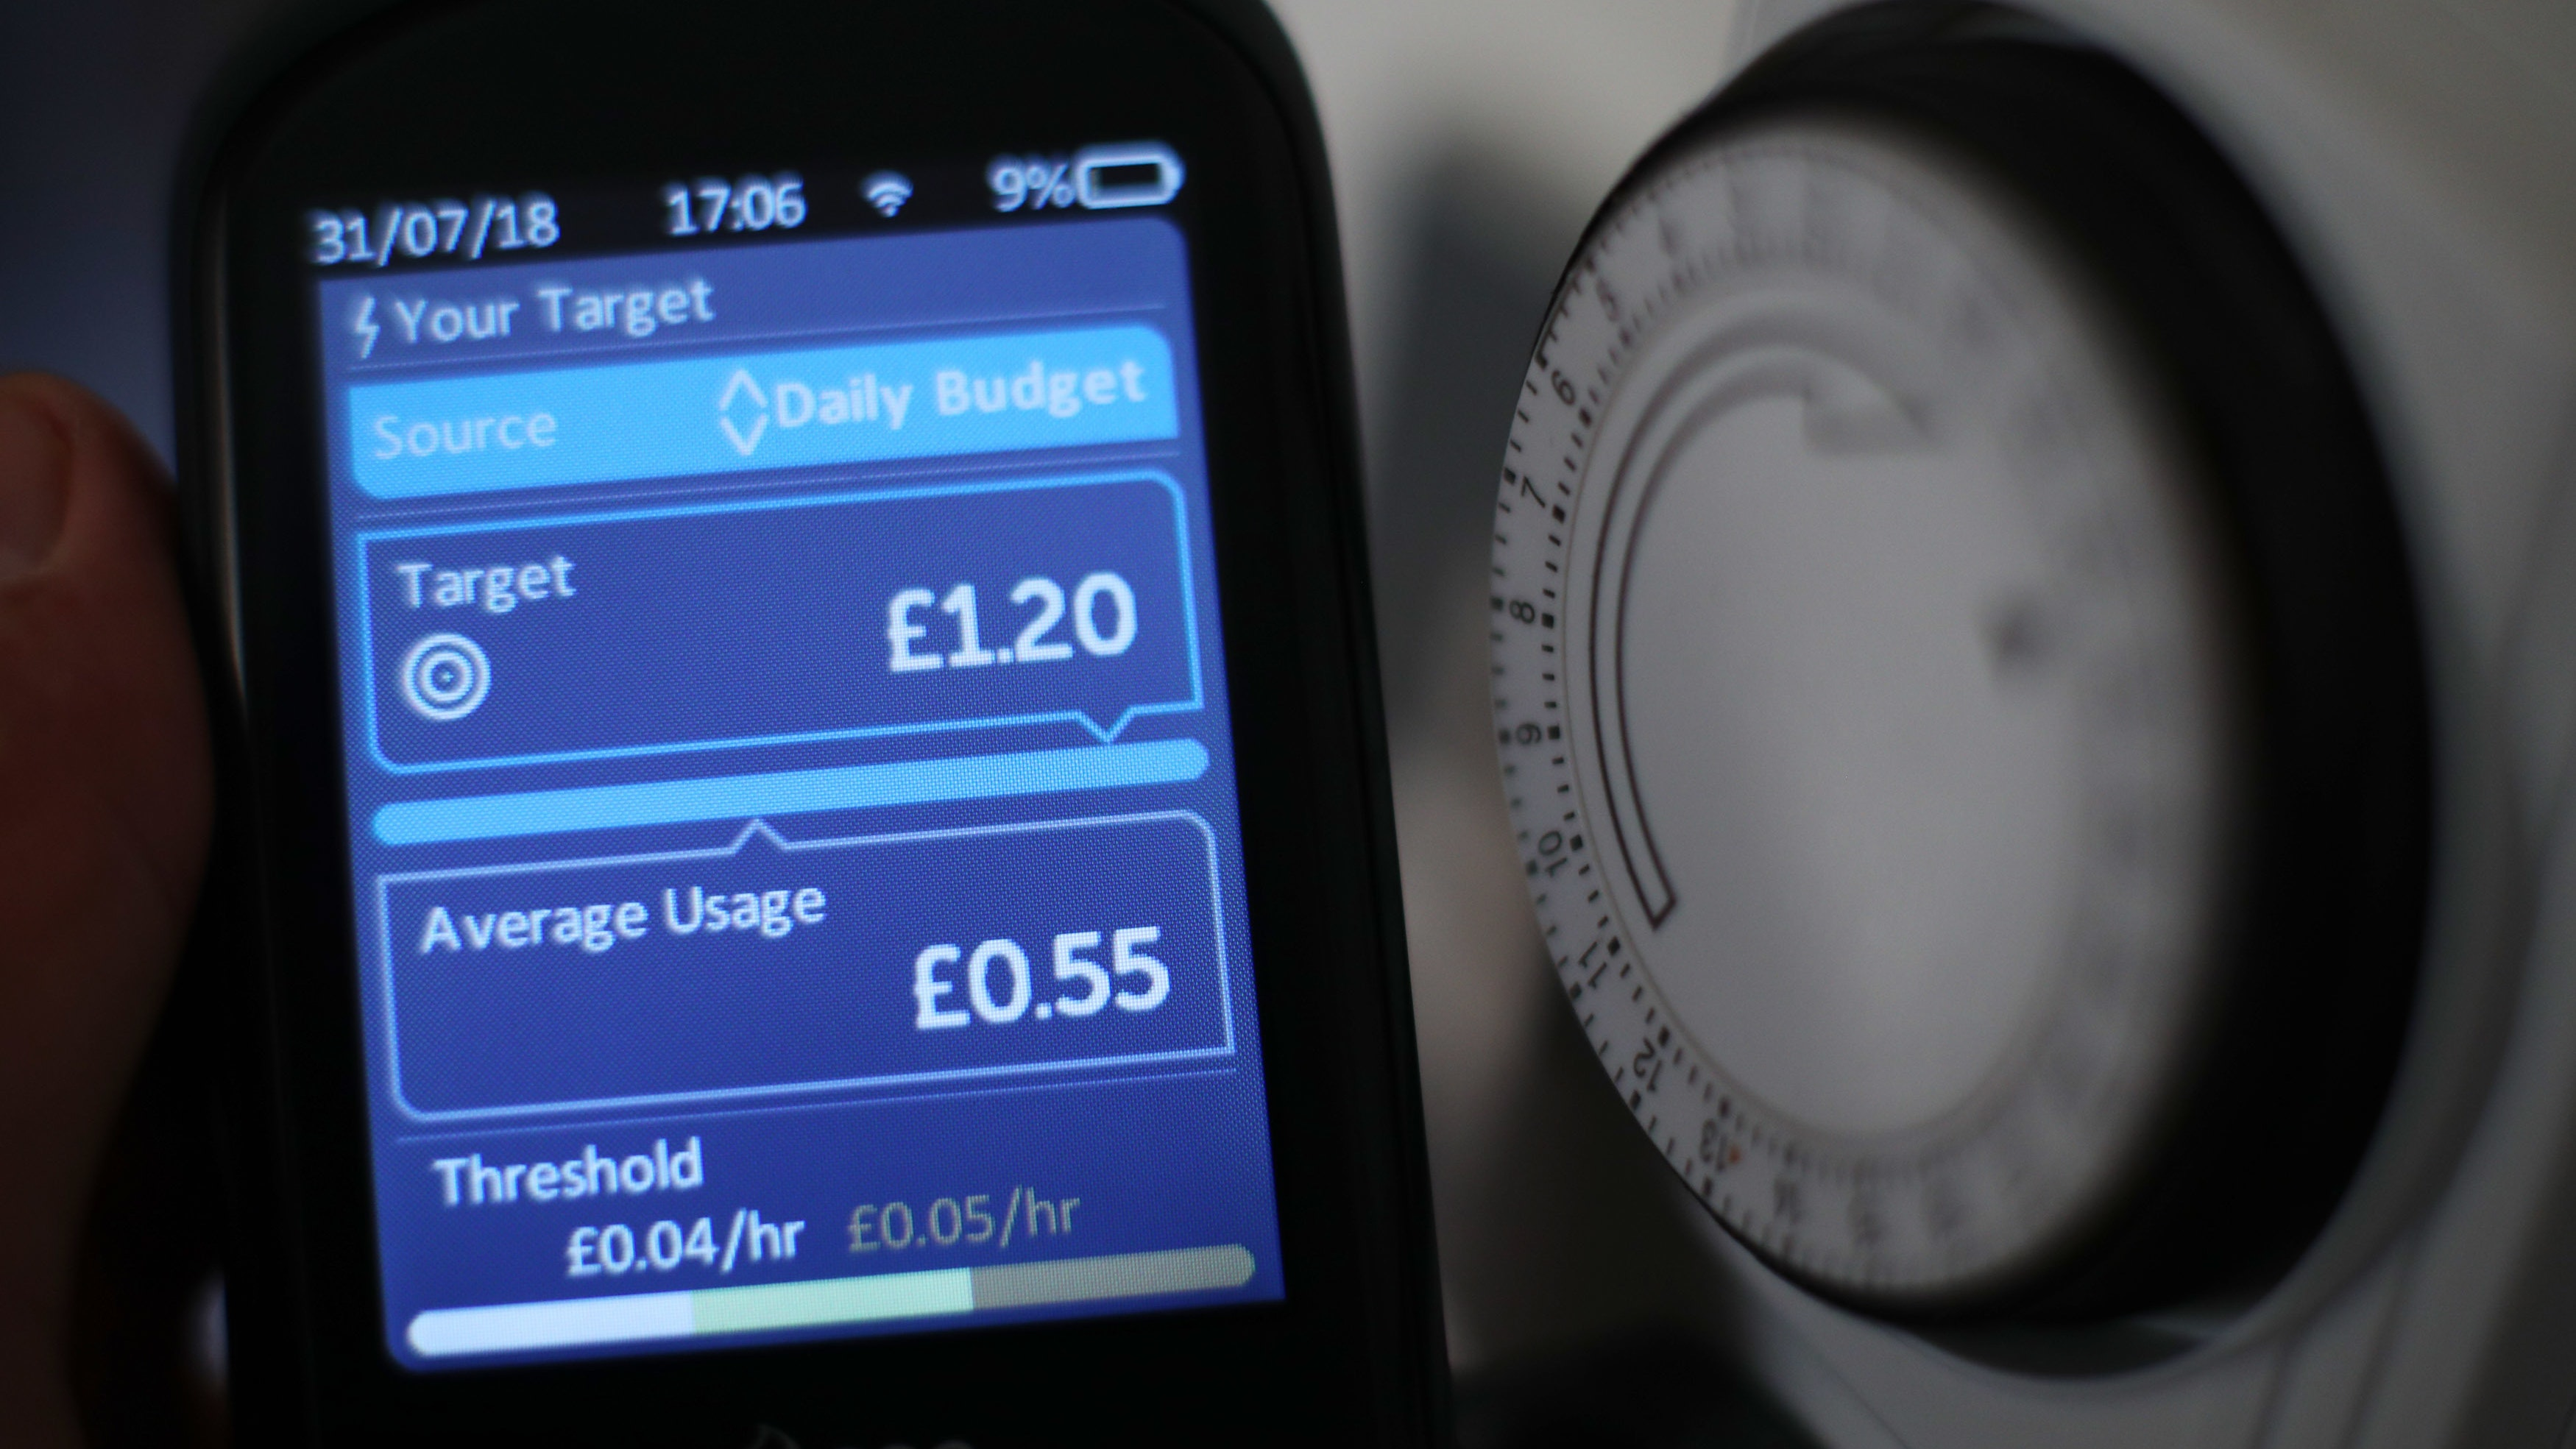 Energy giant to cut hundreds of smart meter jobs, says union | BT